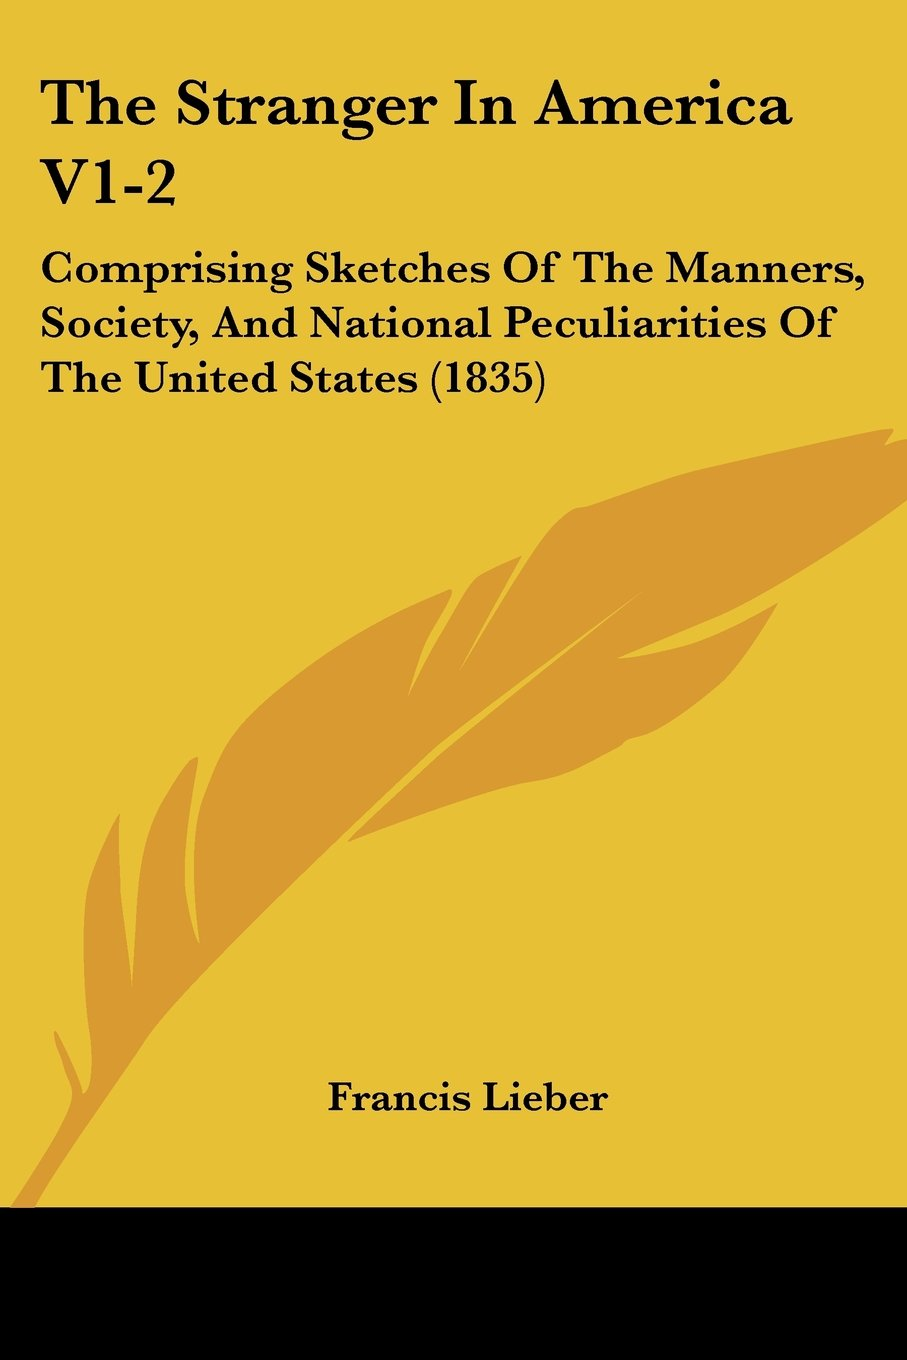 Download The Stranger In America V1-2: Comprising Sketches Of The Manners, Society, And National Peculiarities Of The United States (1835) ebook